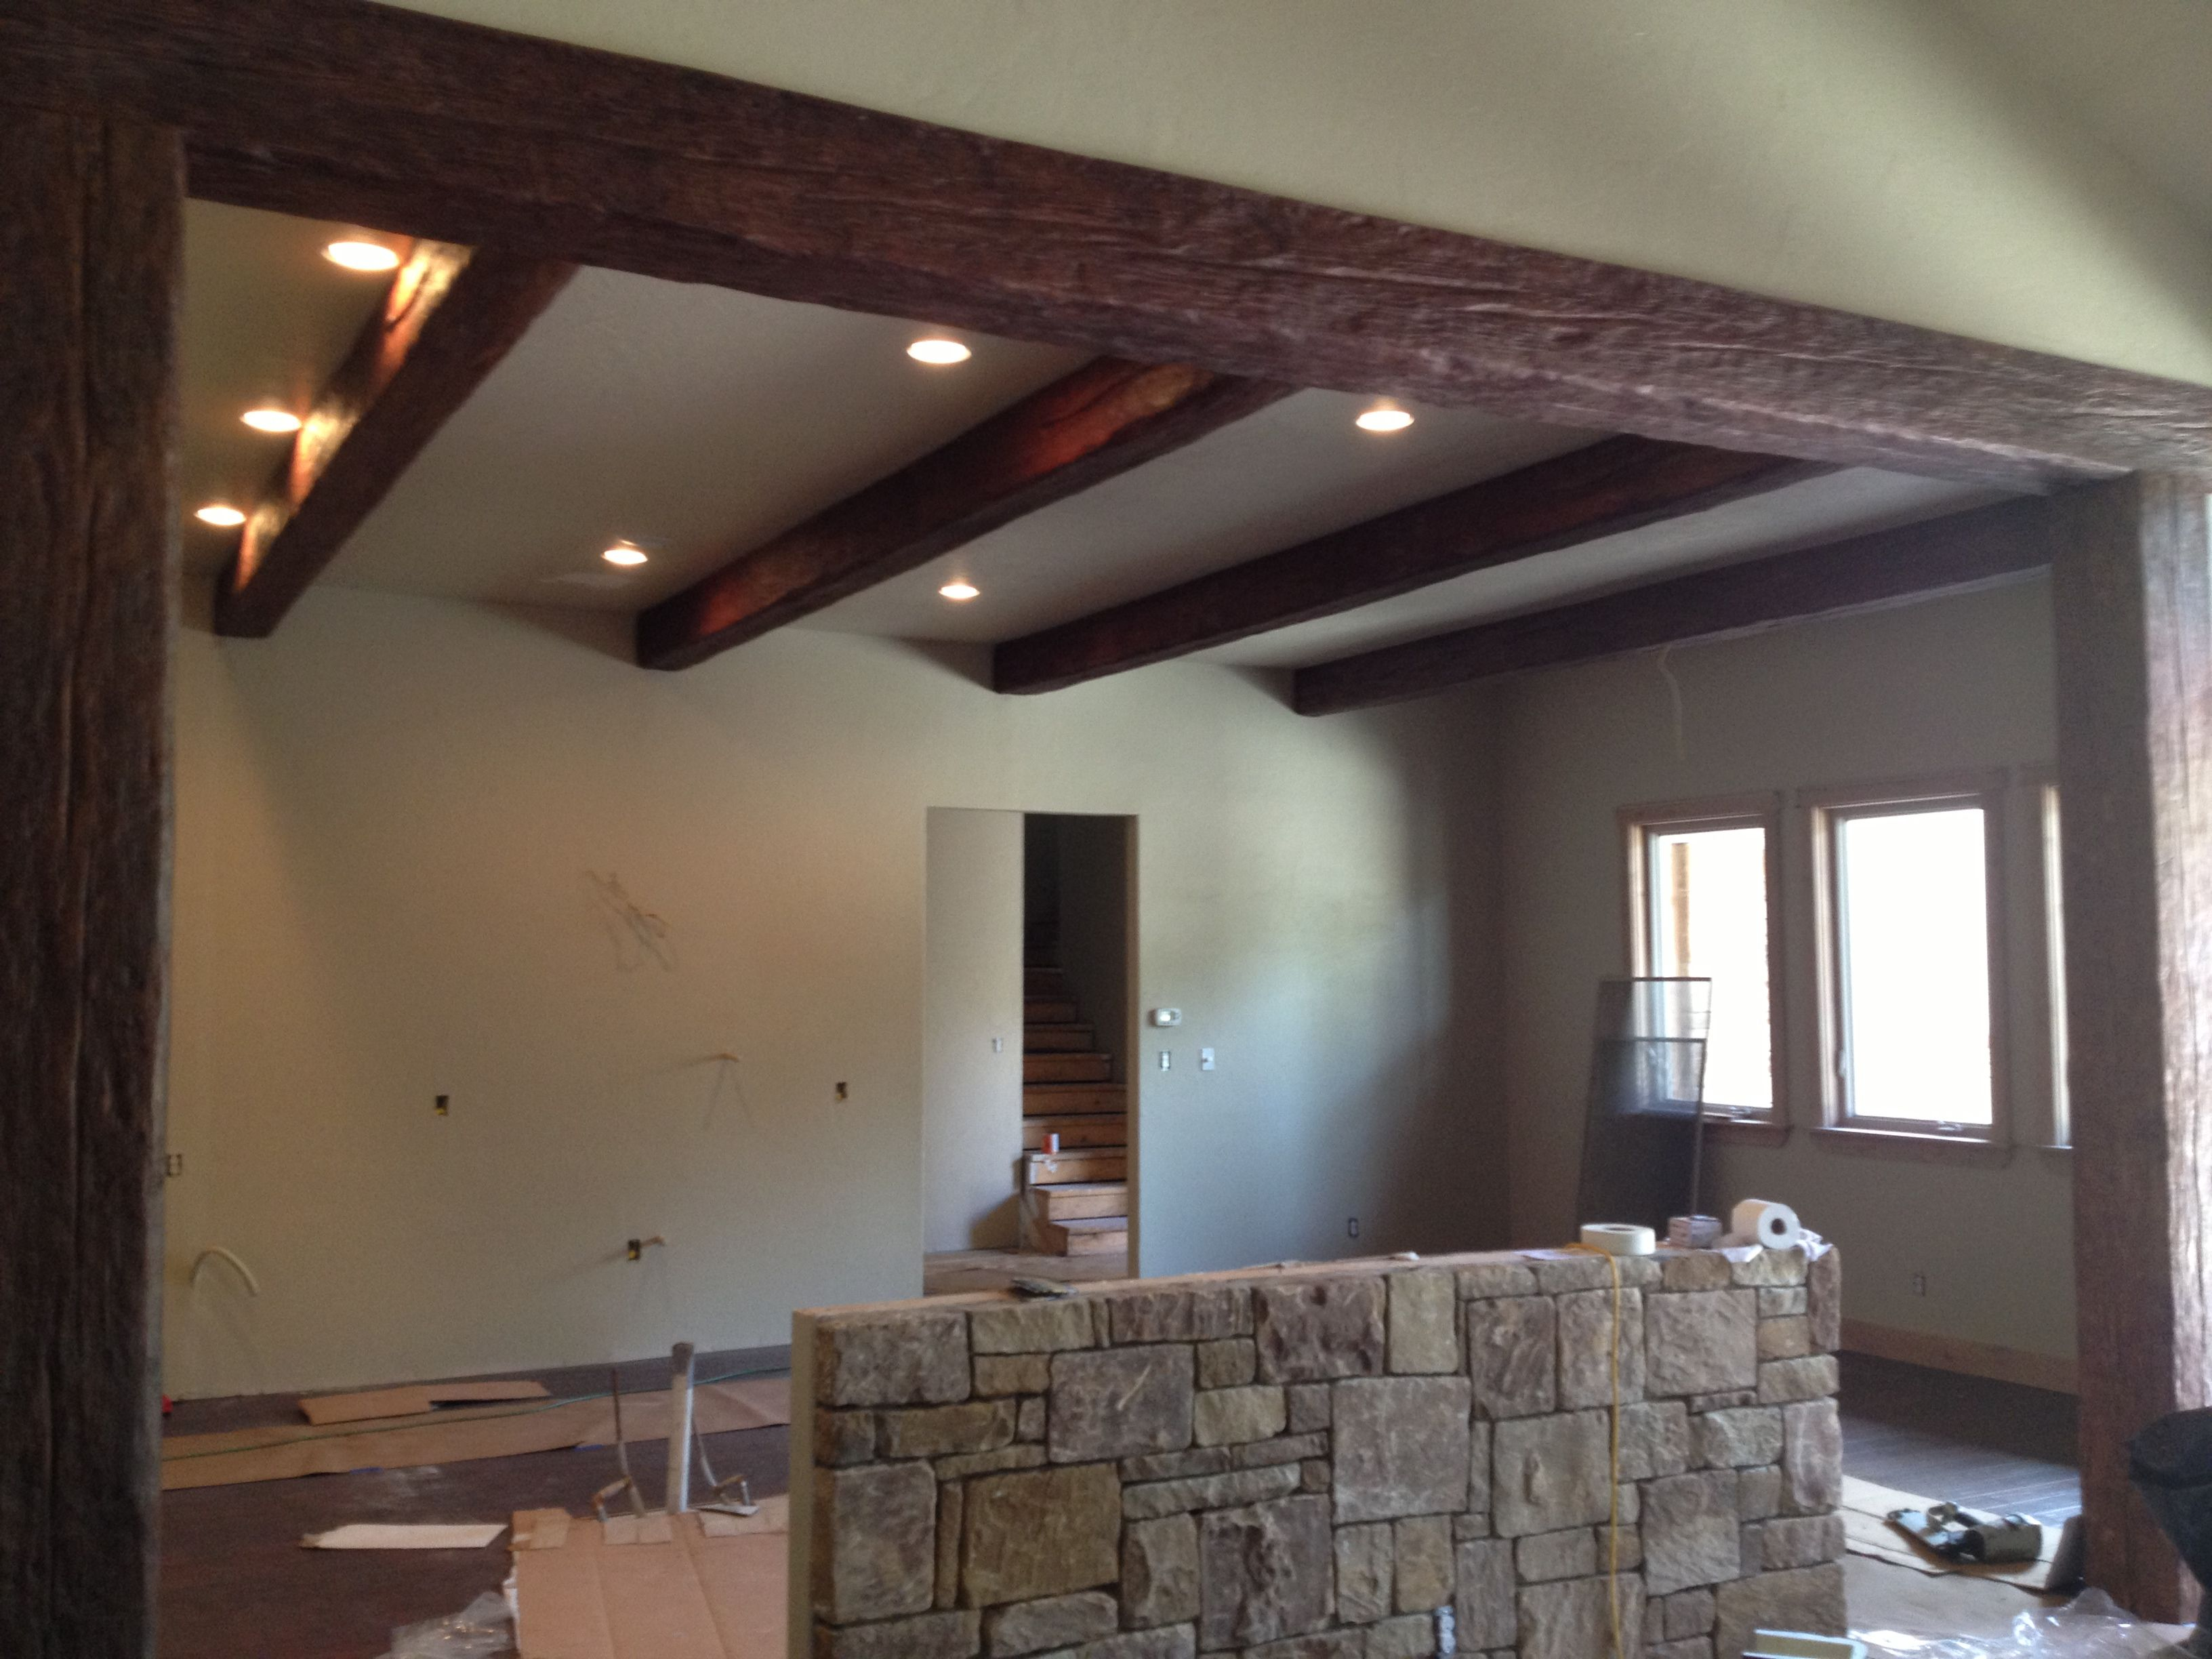 Faux Wood Beams For Ceiling Design Ideas Old World Traditions